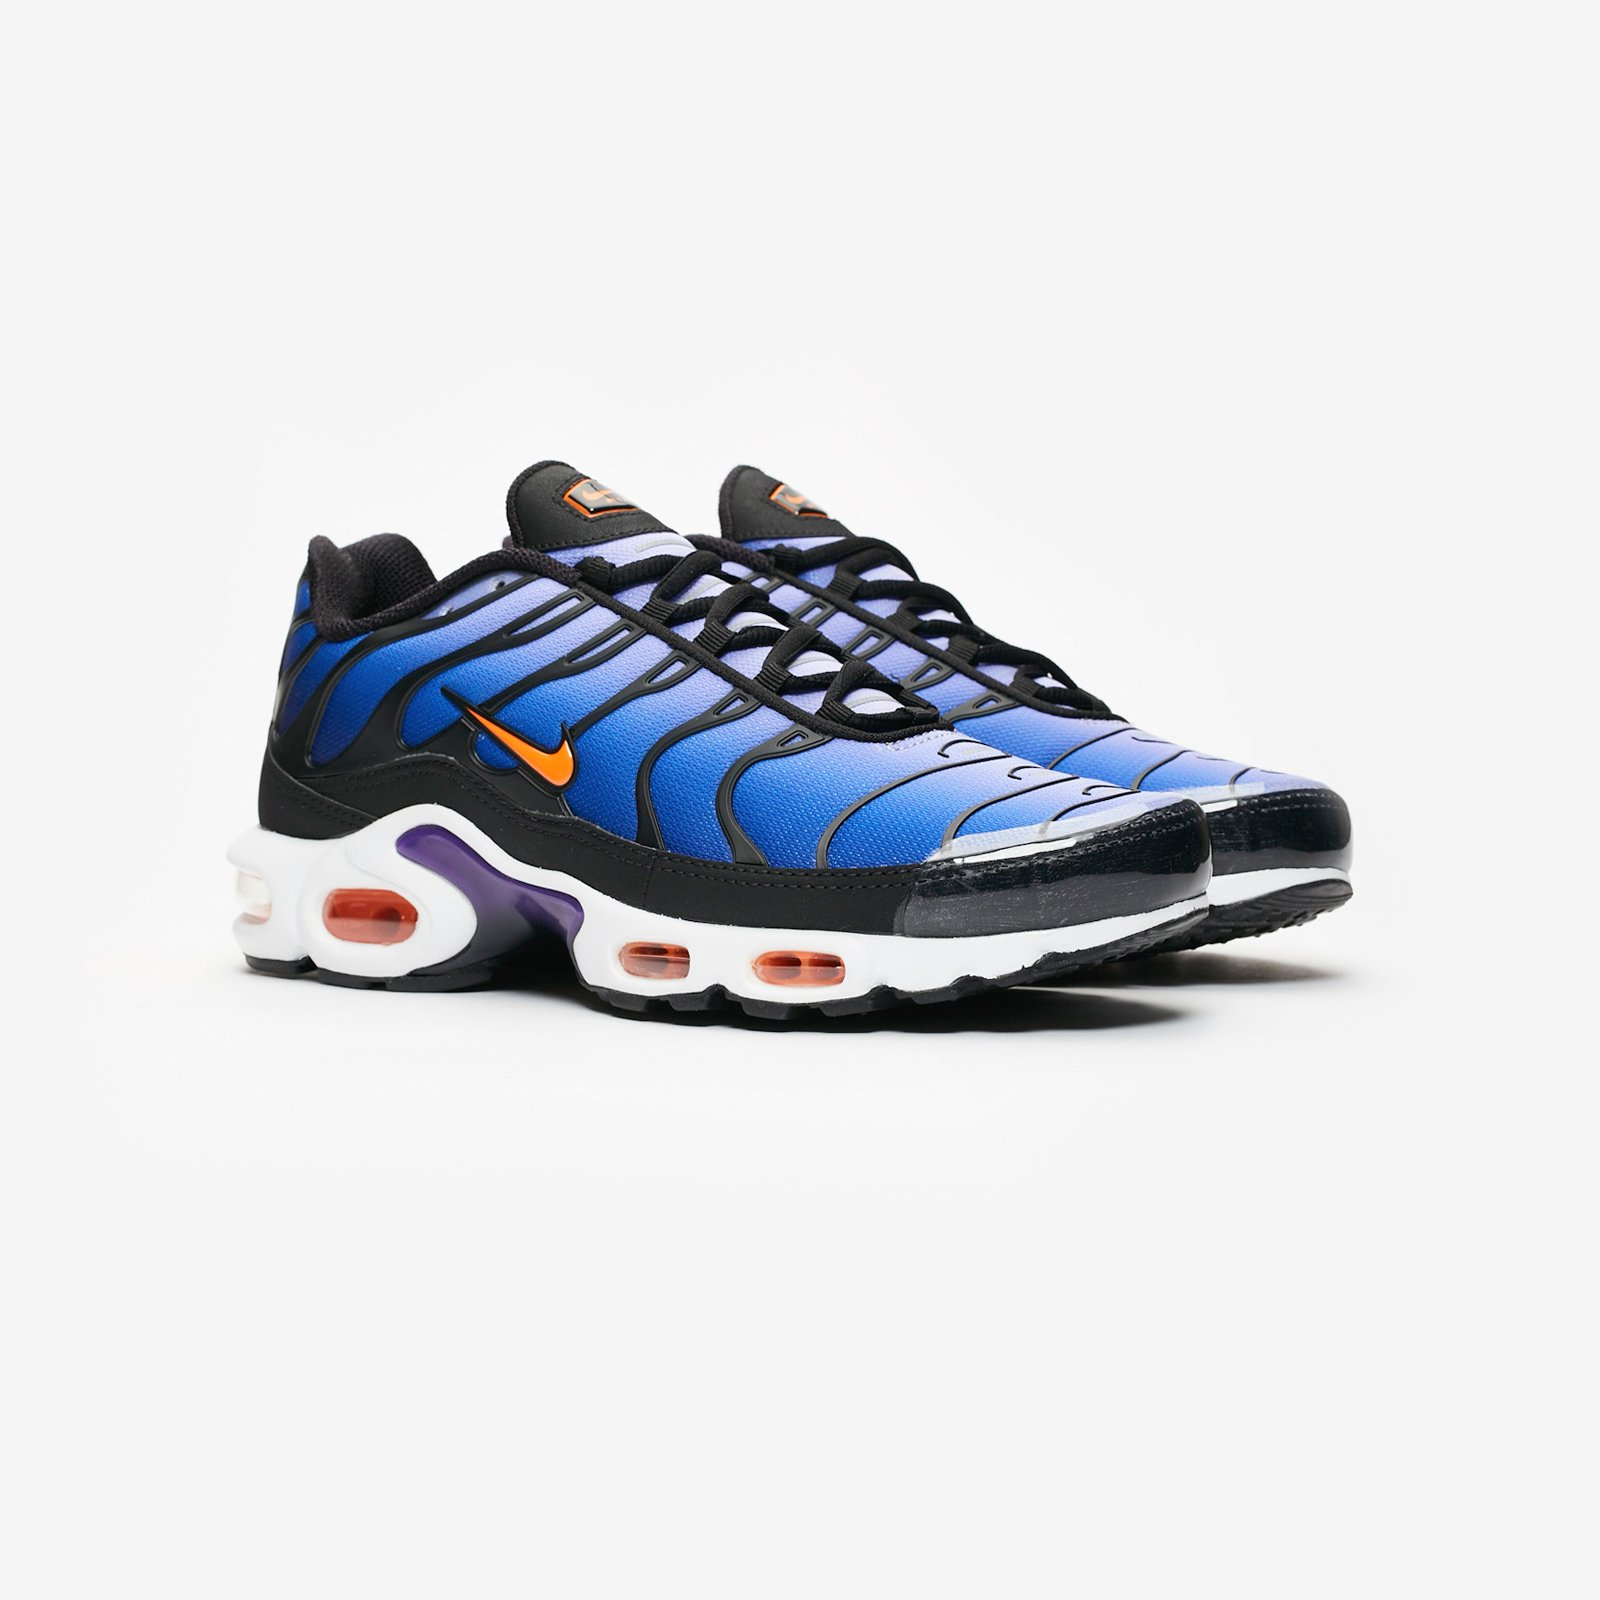 794dd55c487c11 Nike Air Max Plus OG - Bq4629-002 - Sneakersnstuff